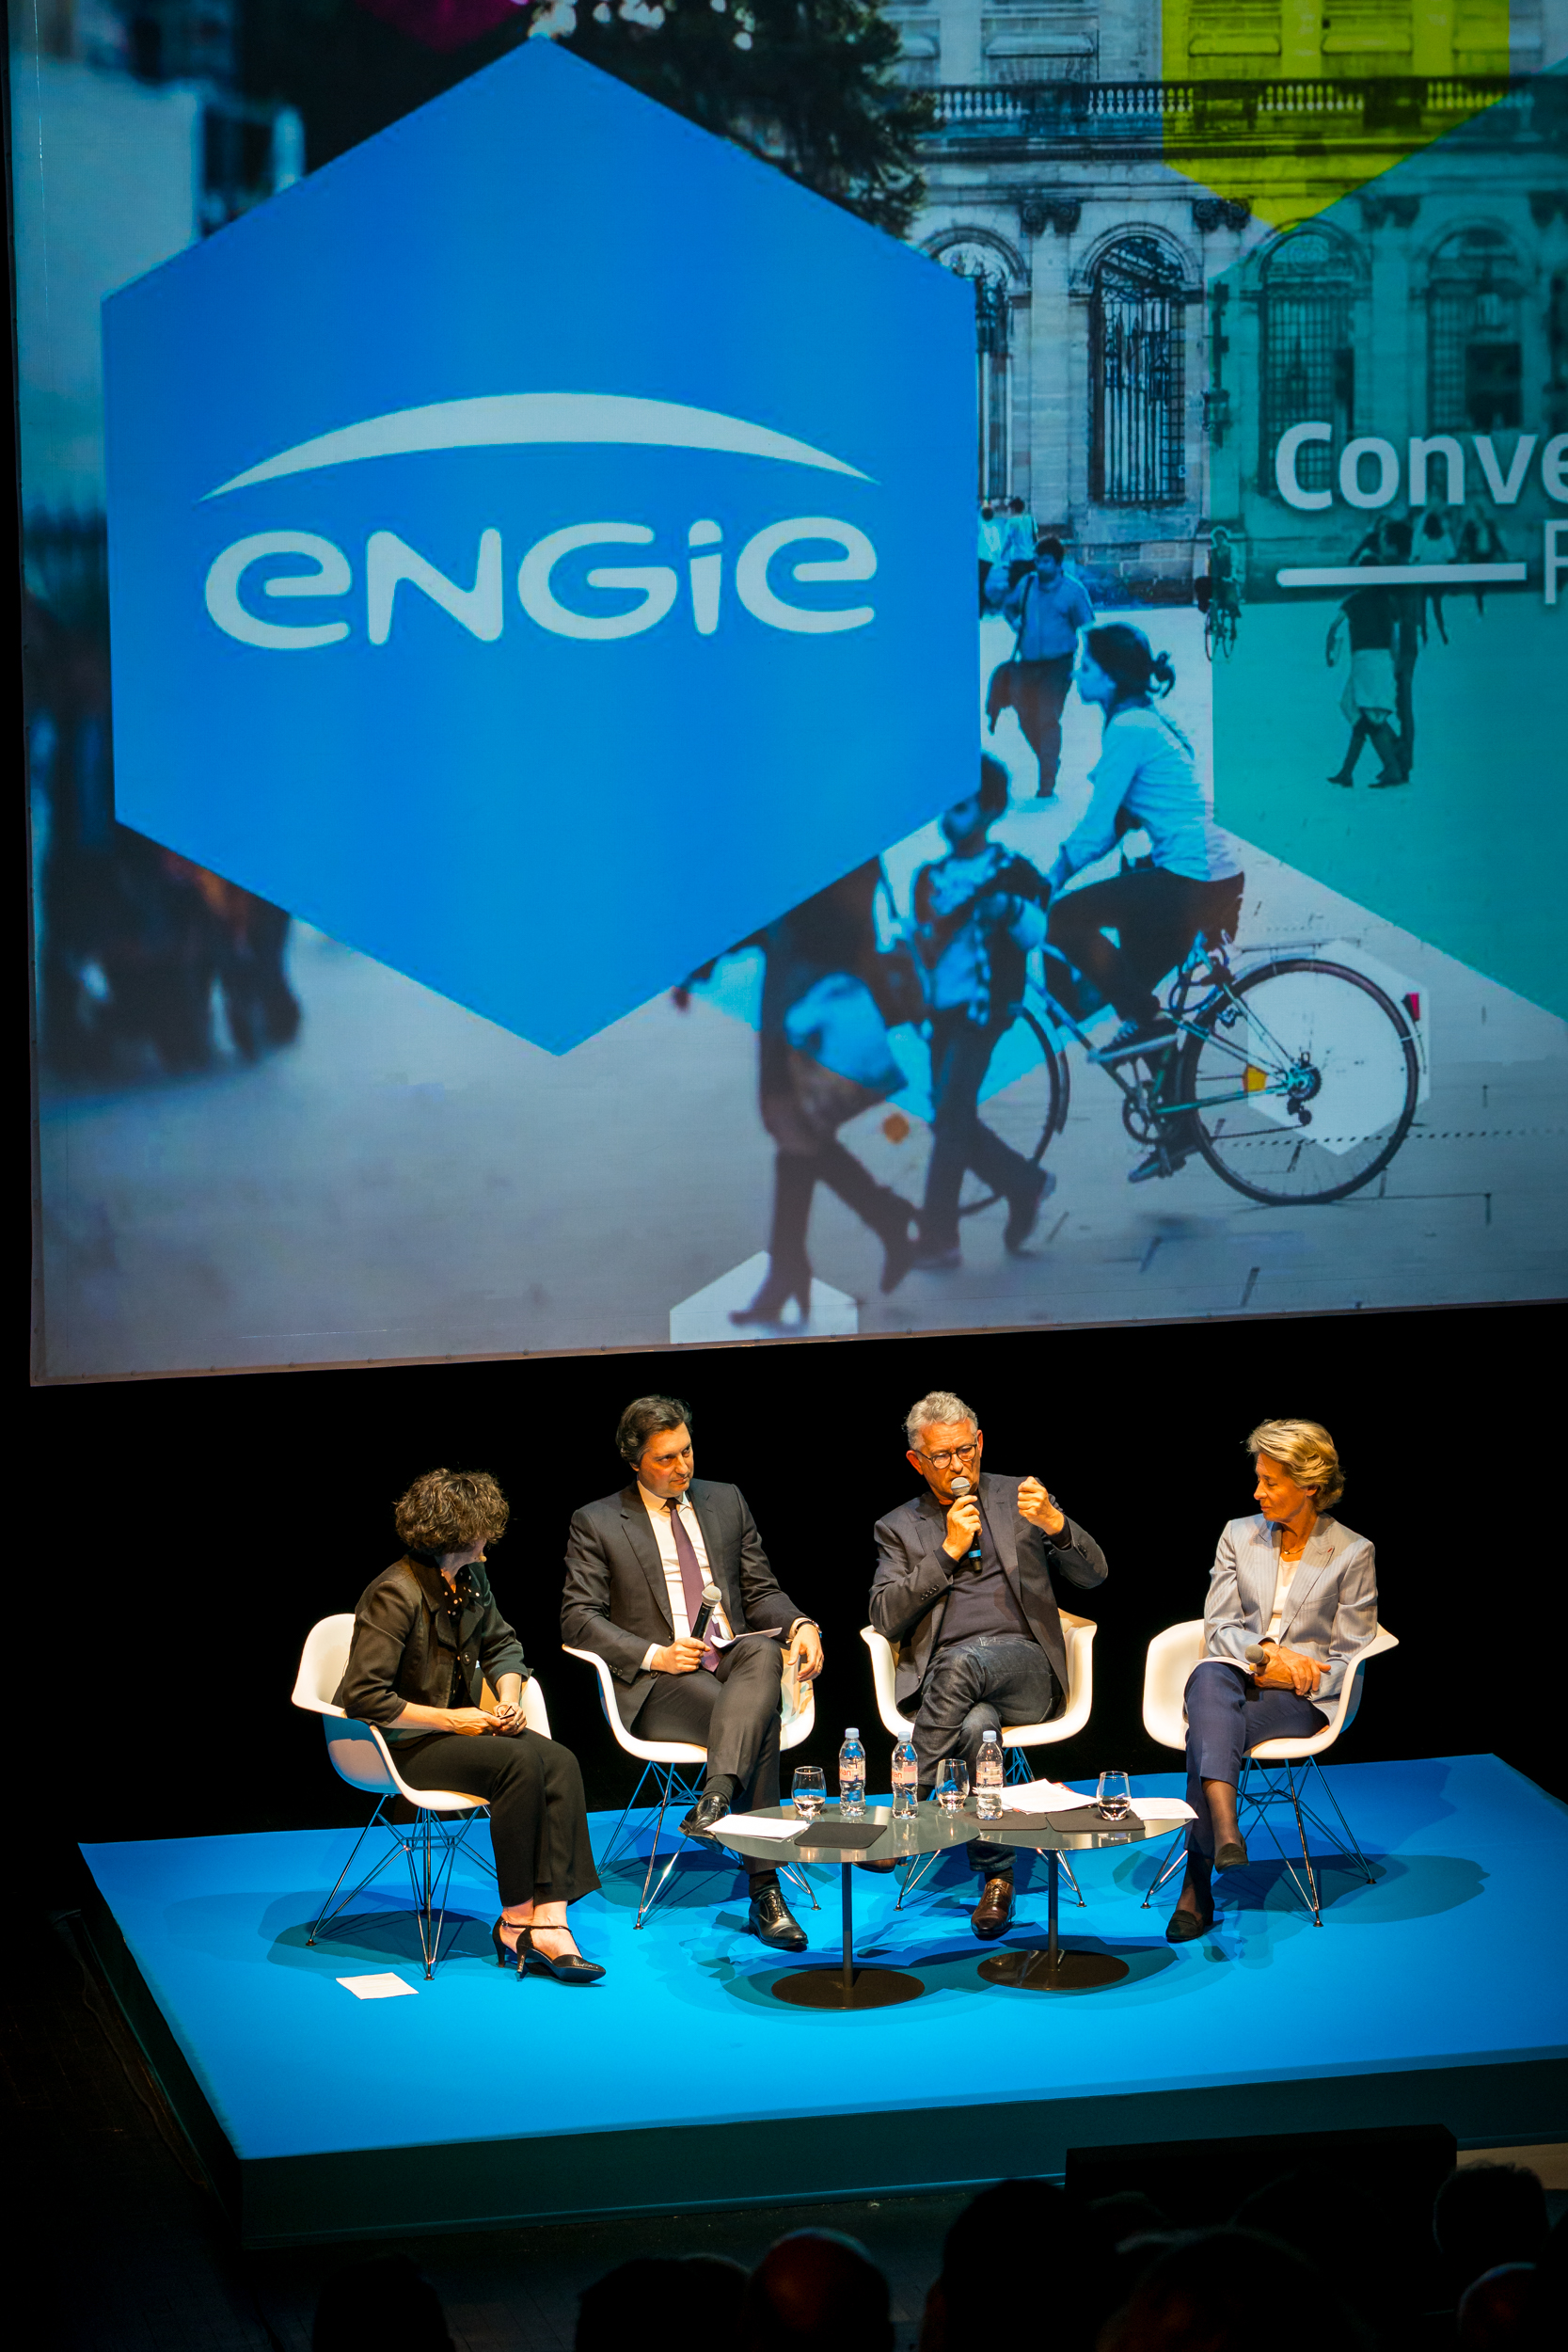 Engie_Convention France_21-05-19_Florian Leger_HD_N°-166.jpg